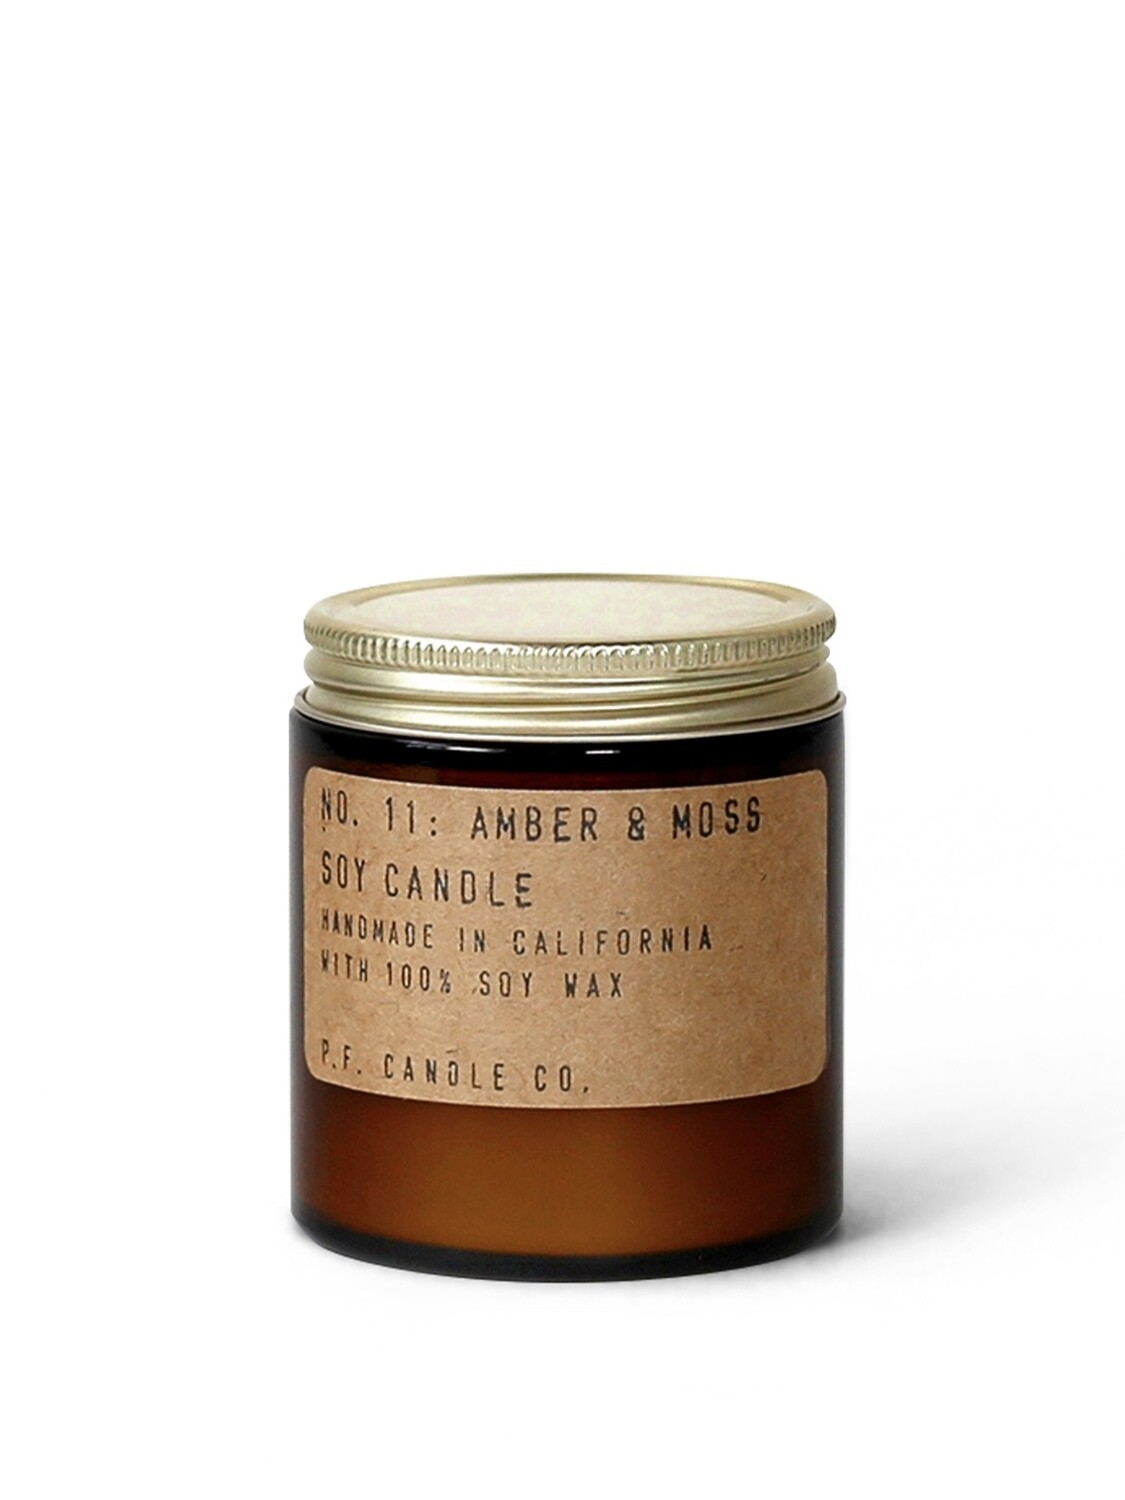 Amber & Moss Mini 3.5 oz Soy Candle - P.F. Candle Co.